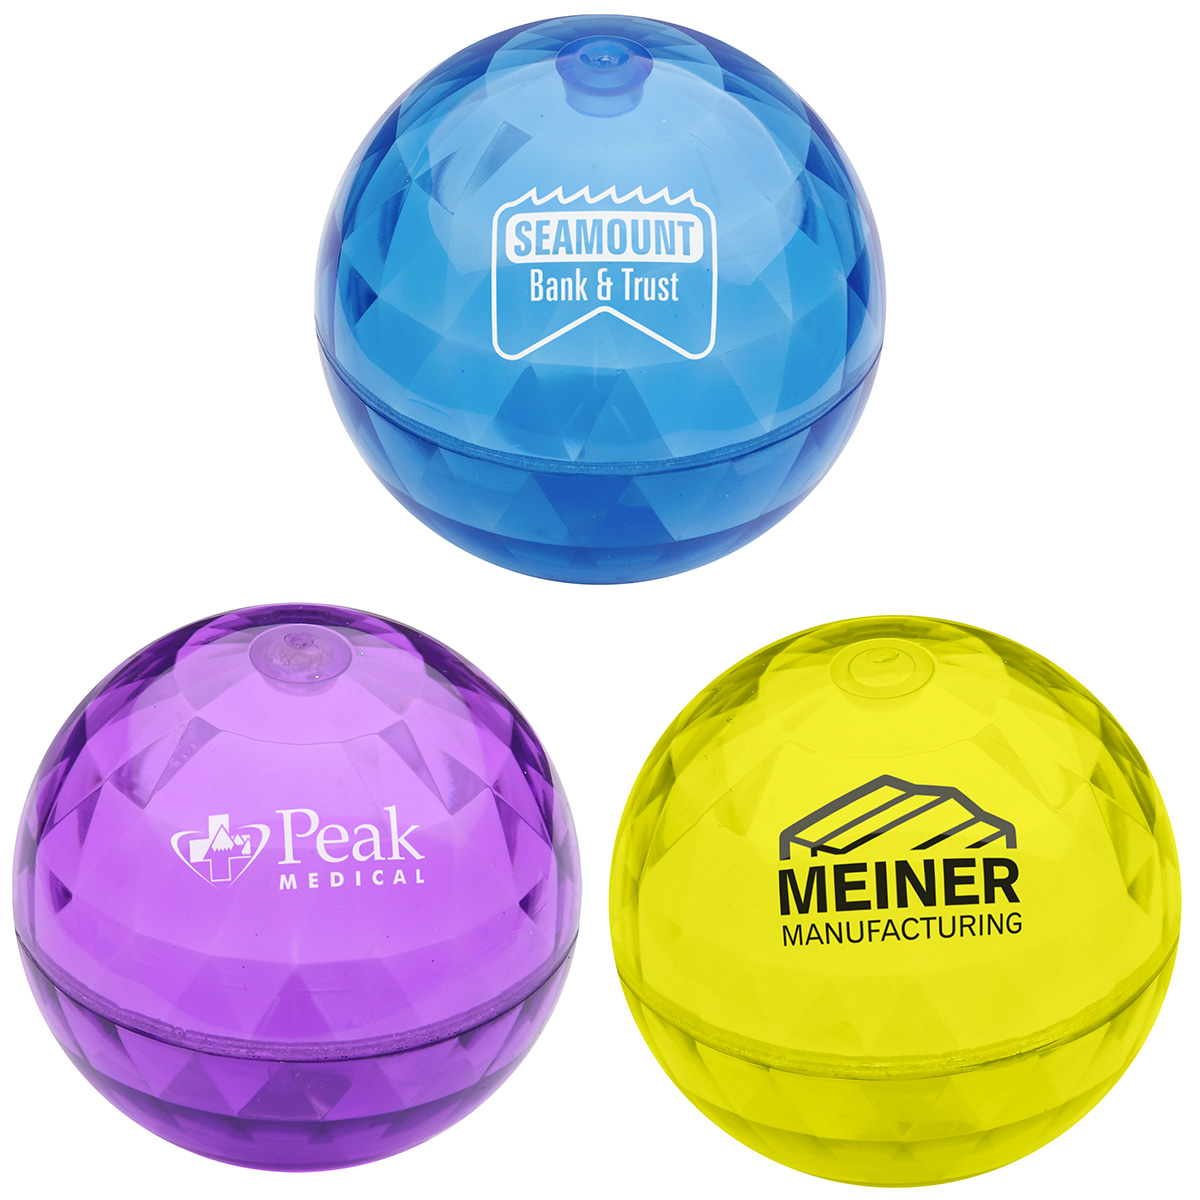 Rocket Orb Promo Bouncer Ball, LBL-RK10 - 1 Colour Imprint